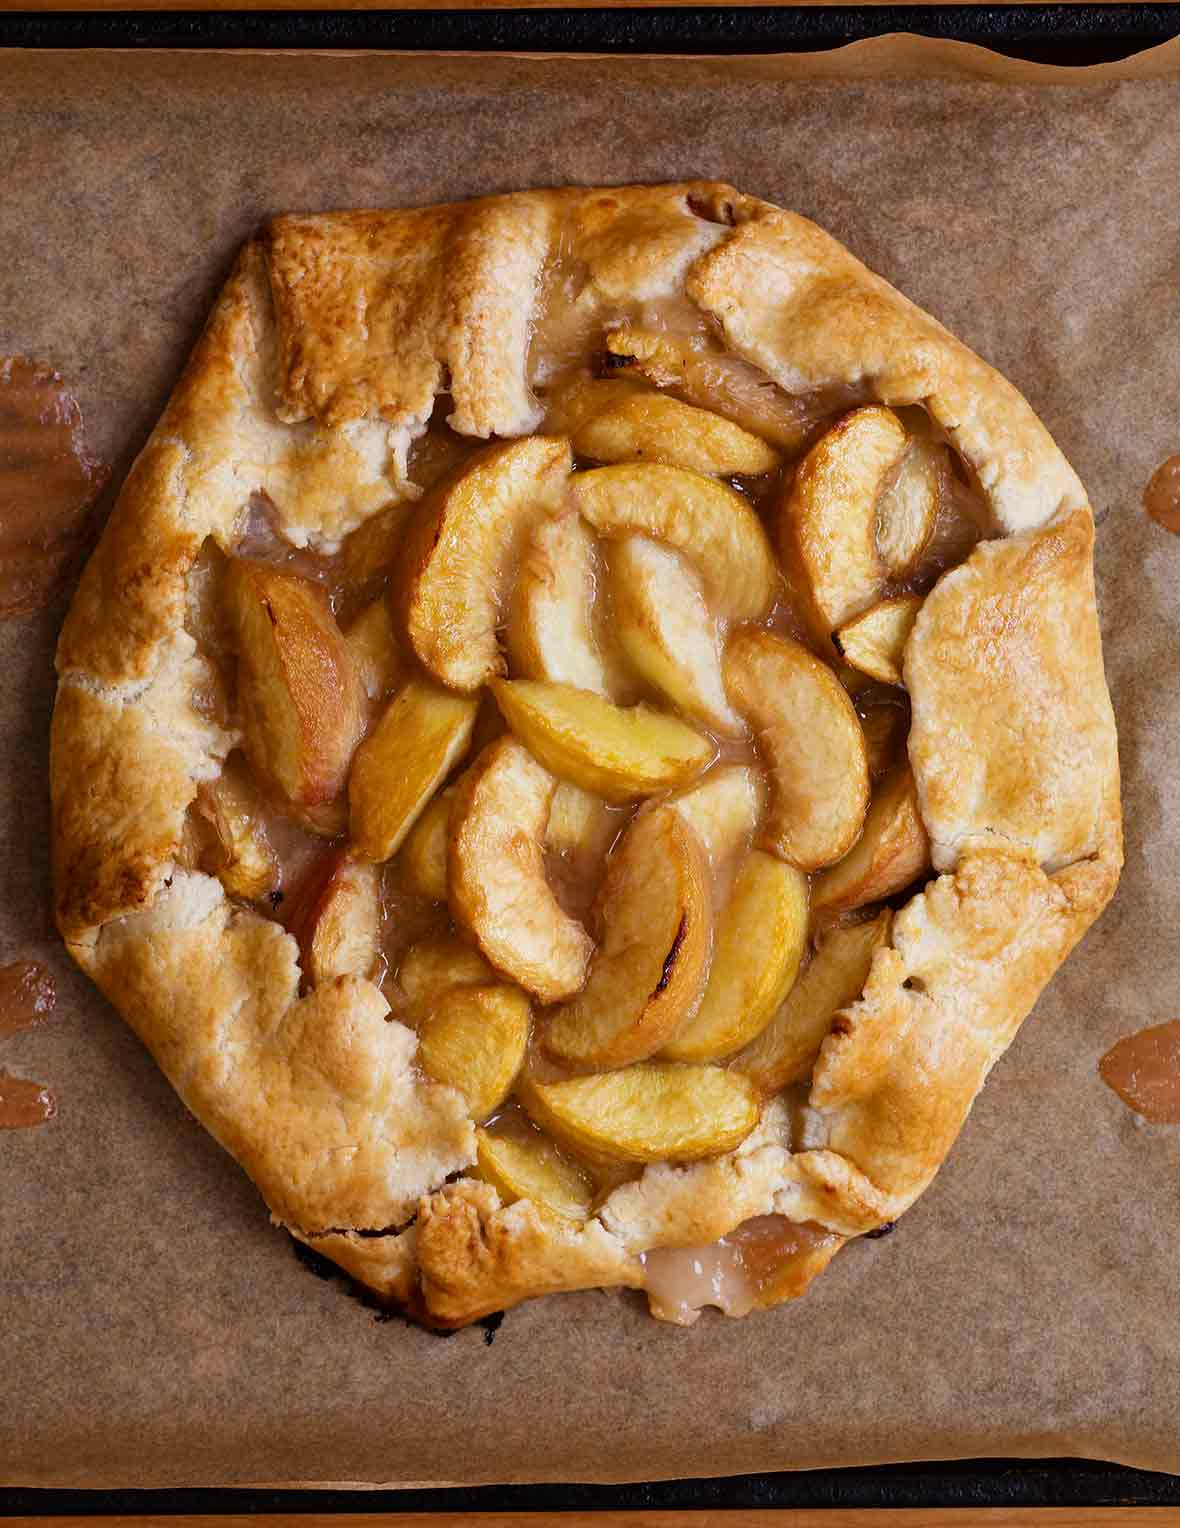 A white peach crostata--slices of white peaches in a circle of dough folded over on the edges sitting a sheet of parchment